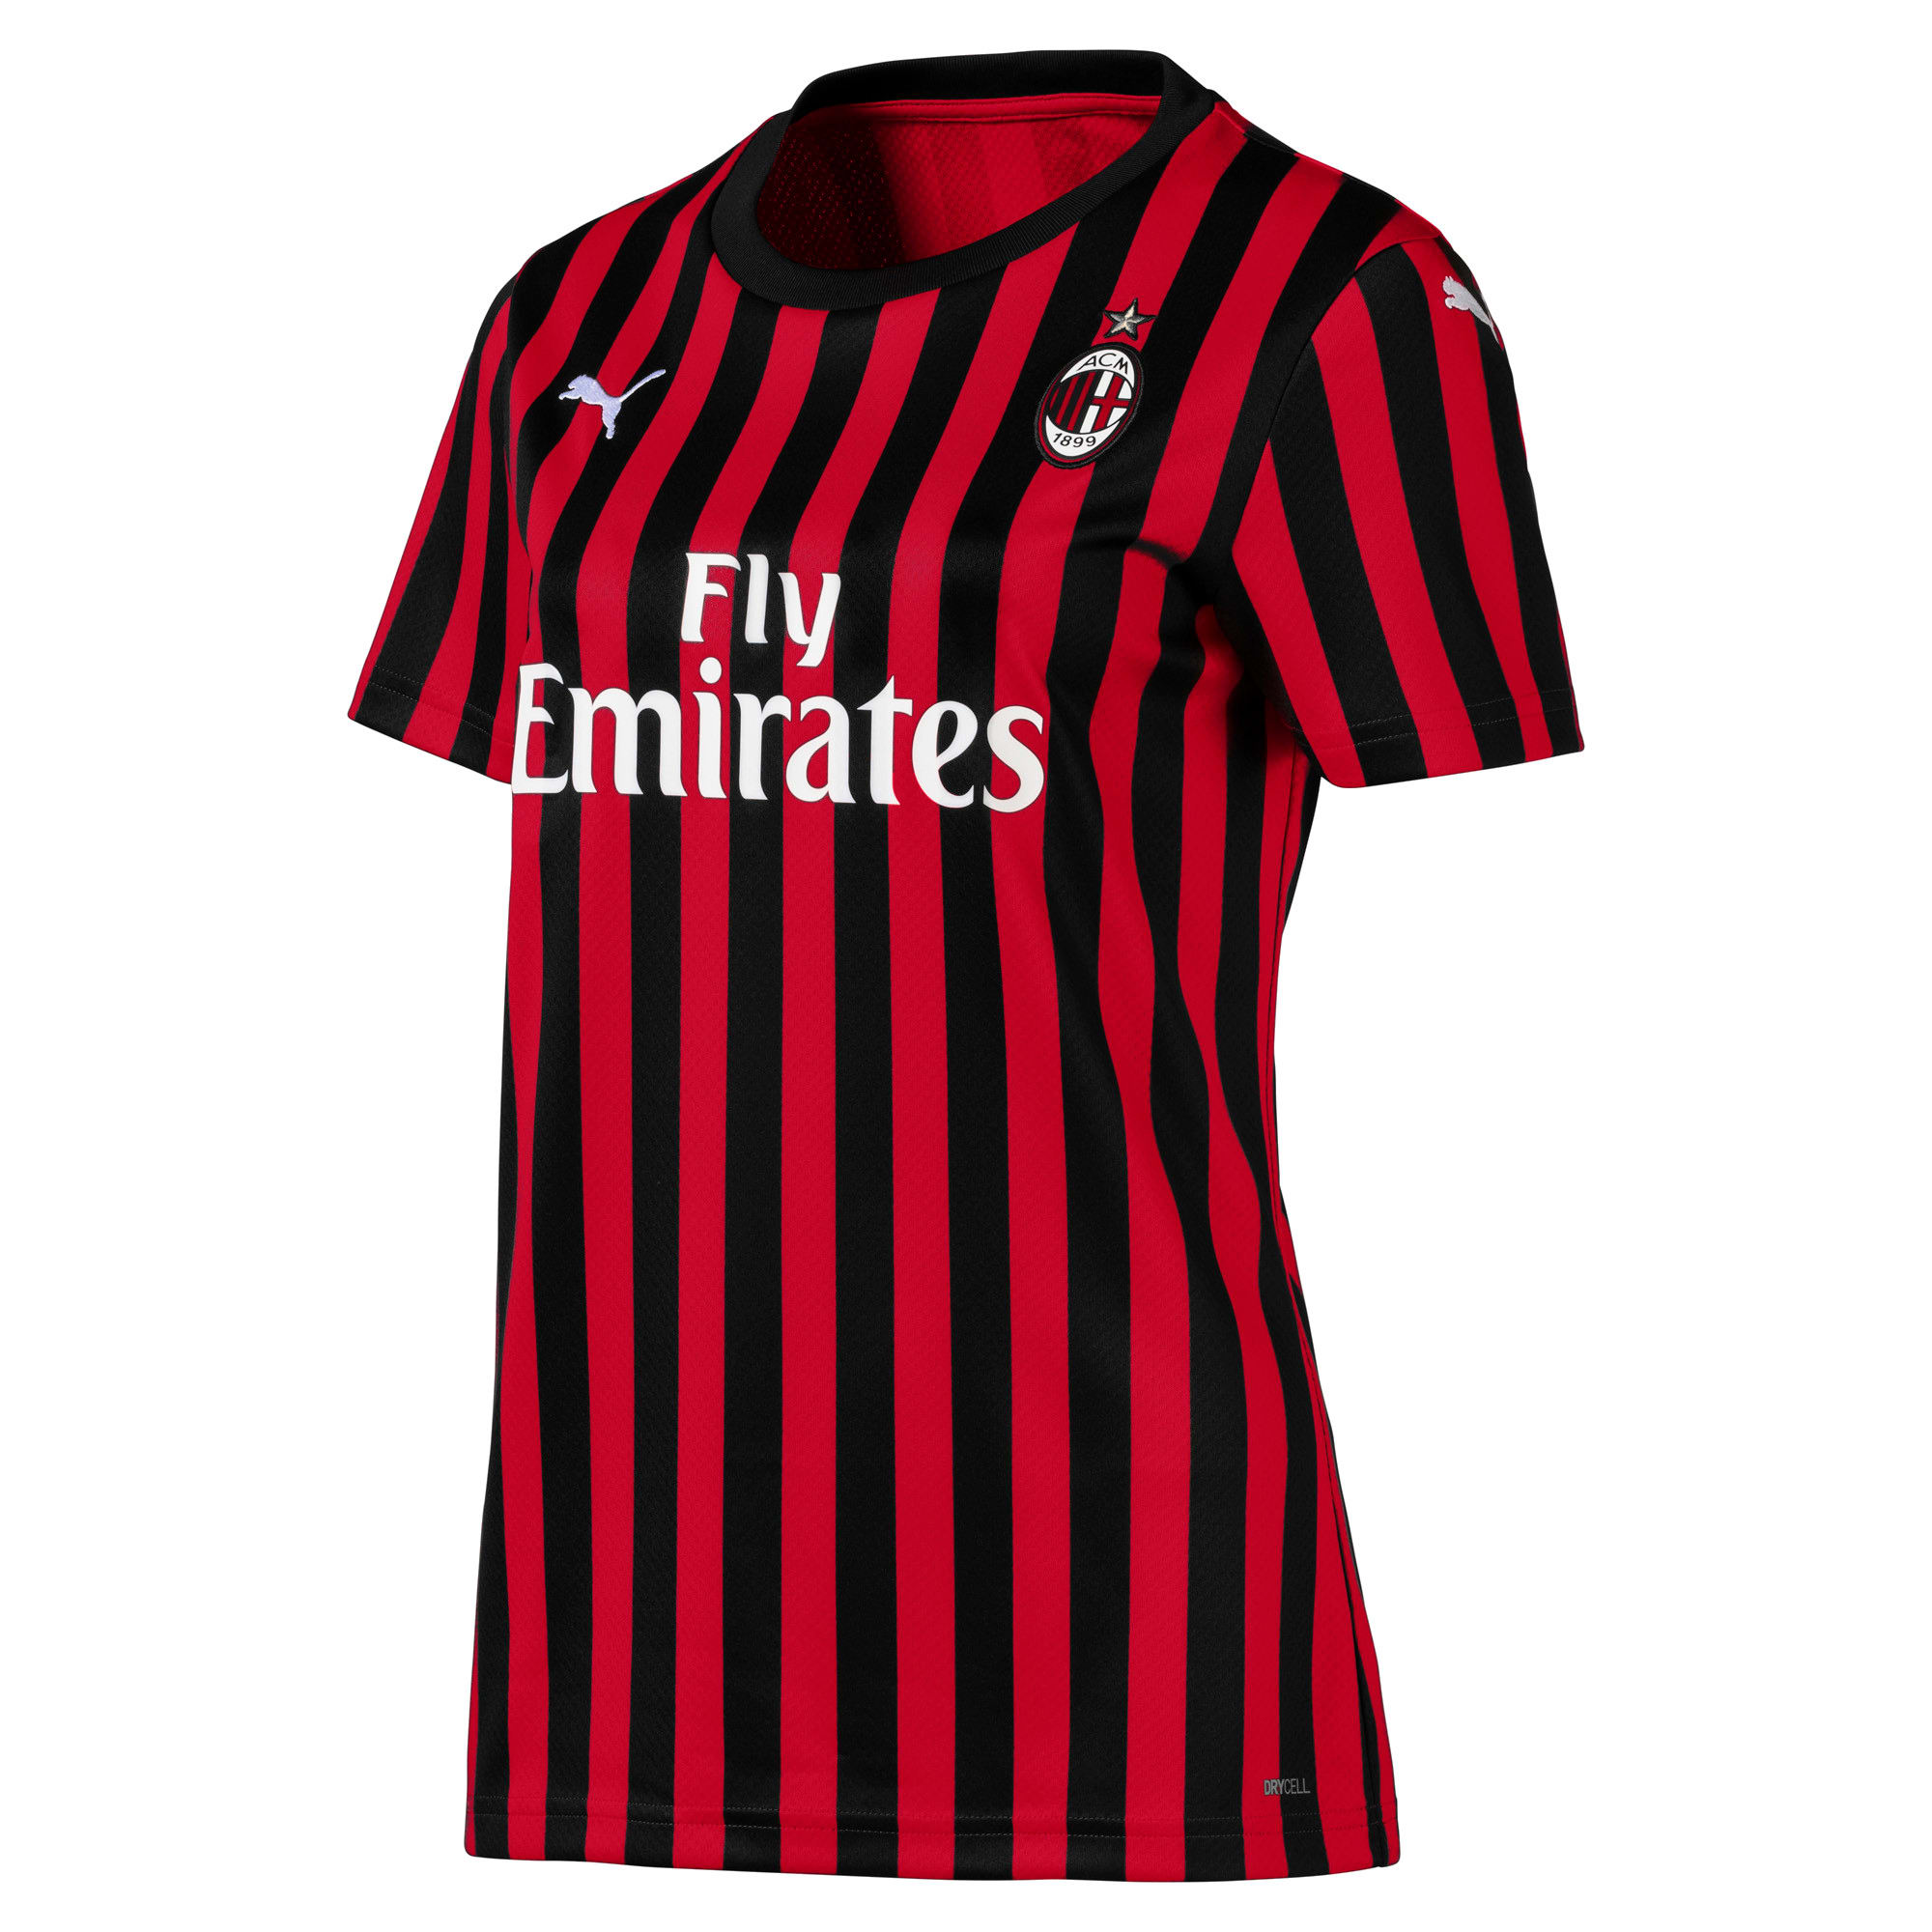 Thumbnail 1 of AC Milan Home Replica Short Sleeve Women's Jersey, Tango Red -Puma Black, medium